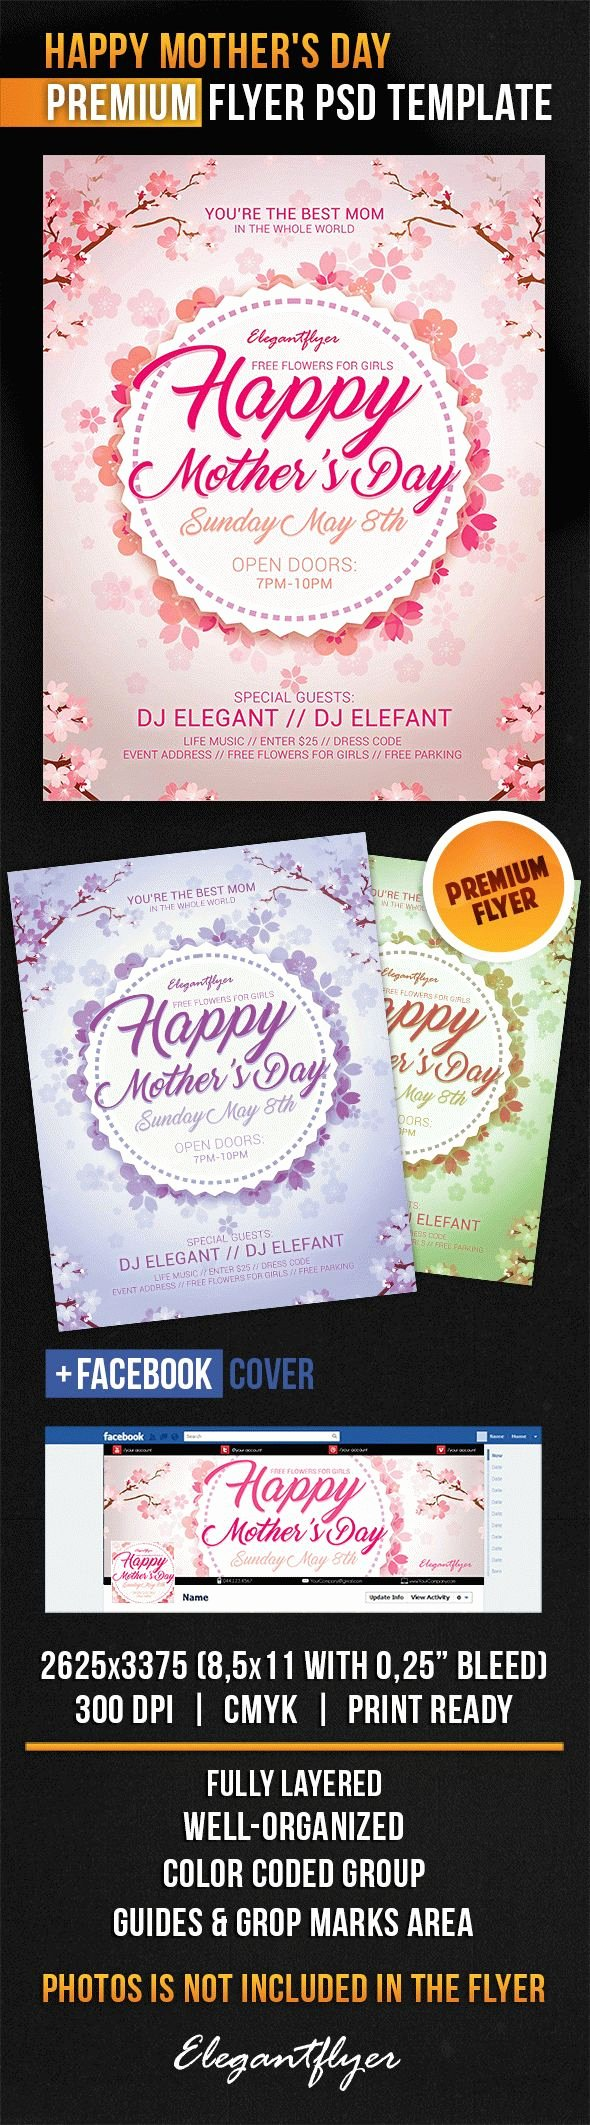 Mother Day Flyer Template Free Best Of Flyer for Mothers Day theme – by Elegantflyer